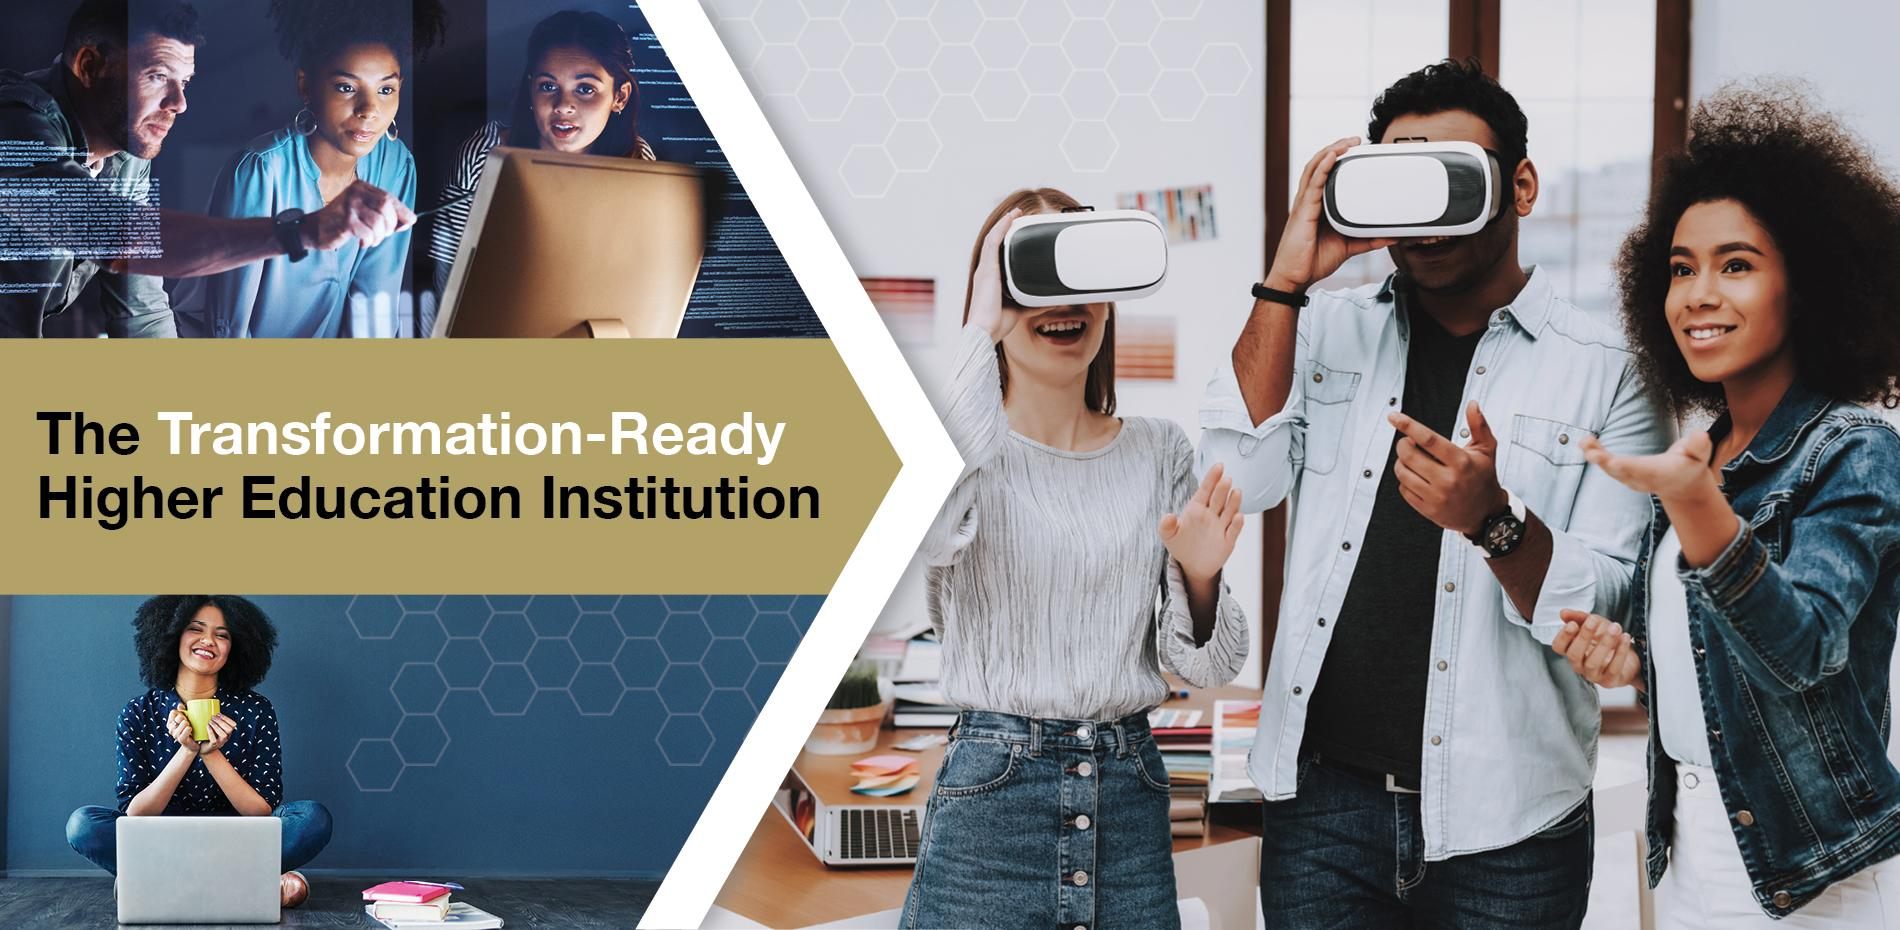 Working professionals sit around computer screens, college students look through virtual reality goggles, and a female online learner sits working on her laptop. All representations of the future landscape of higher education.